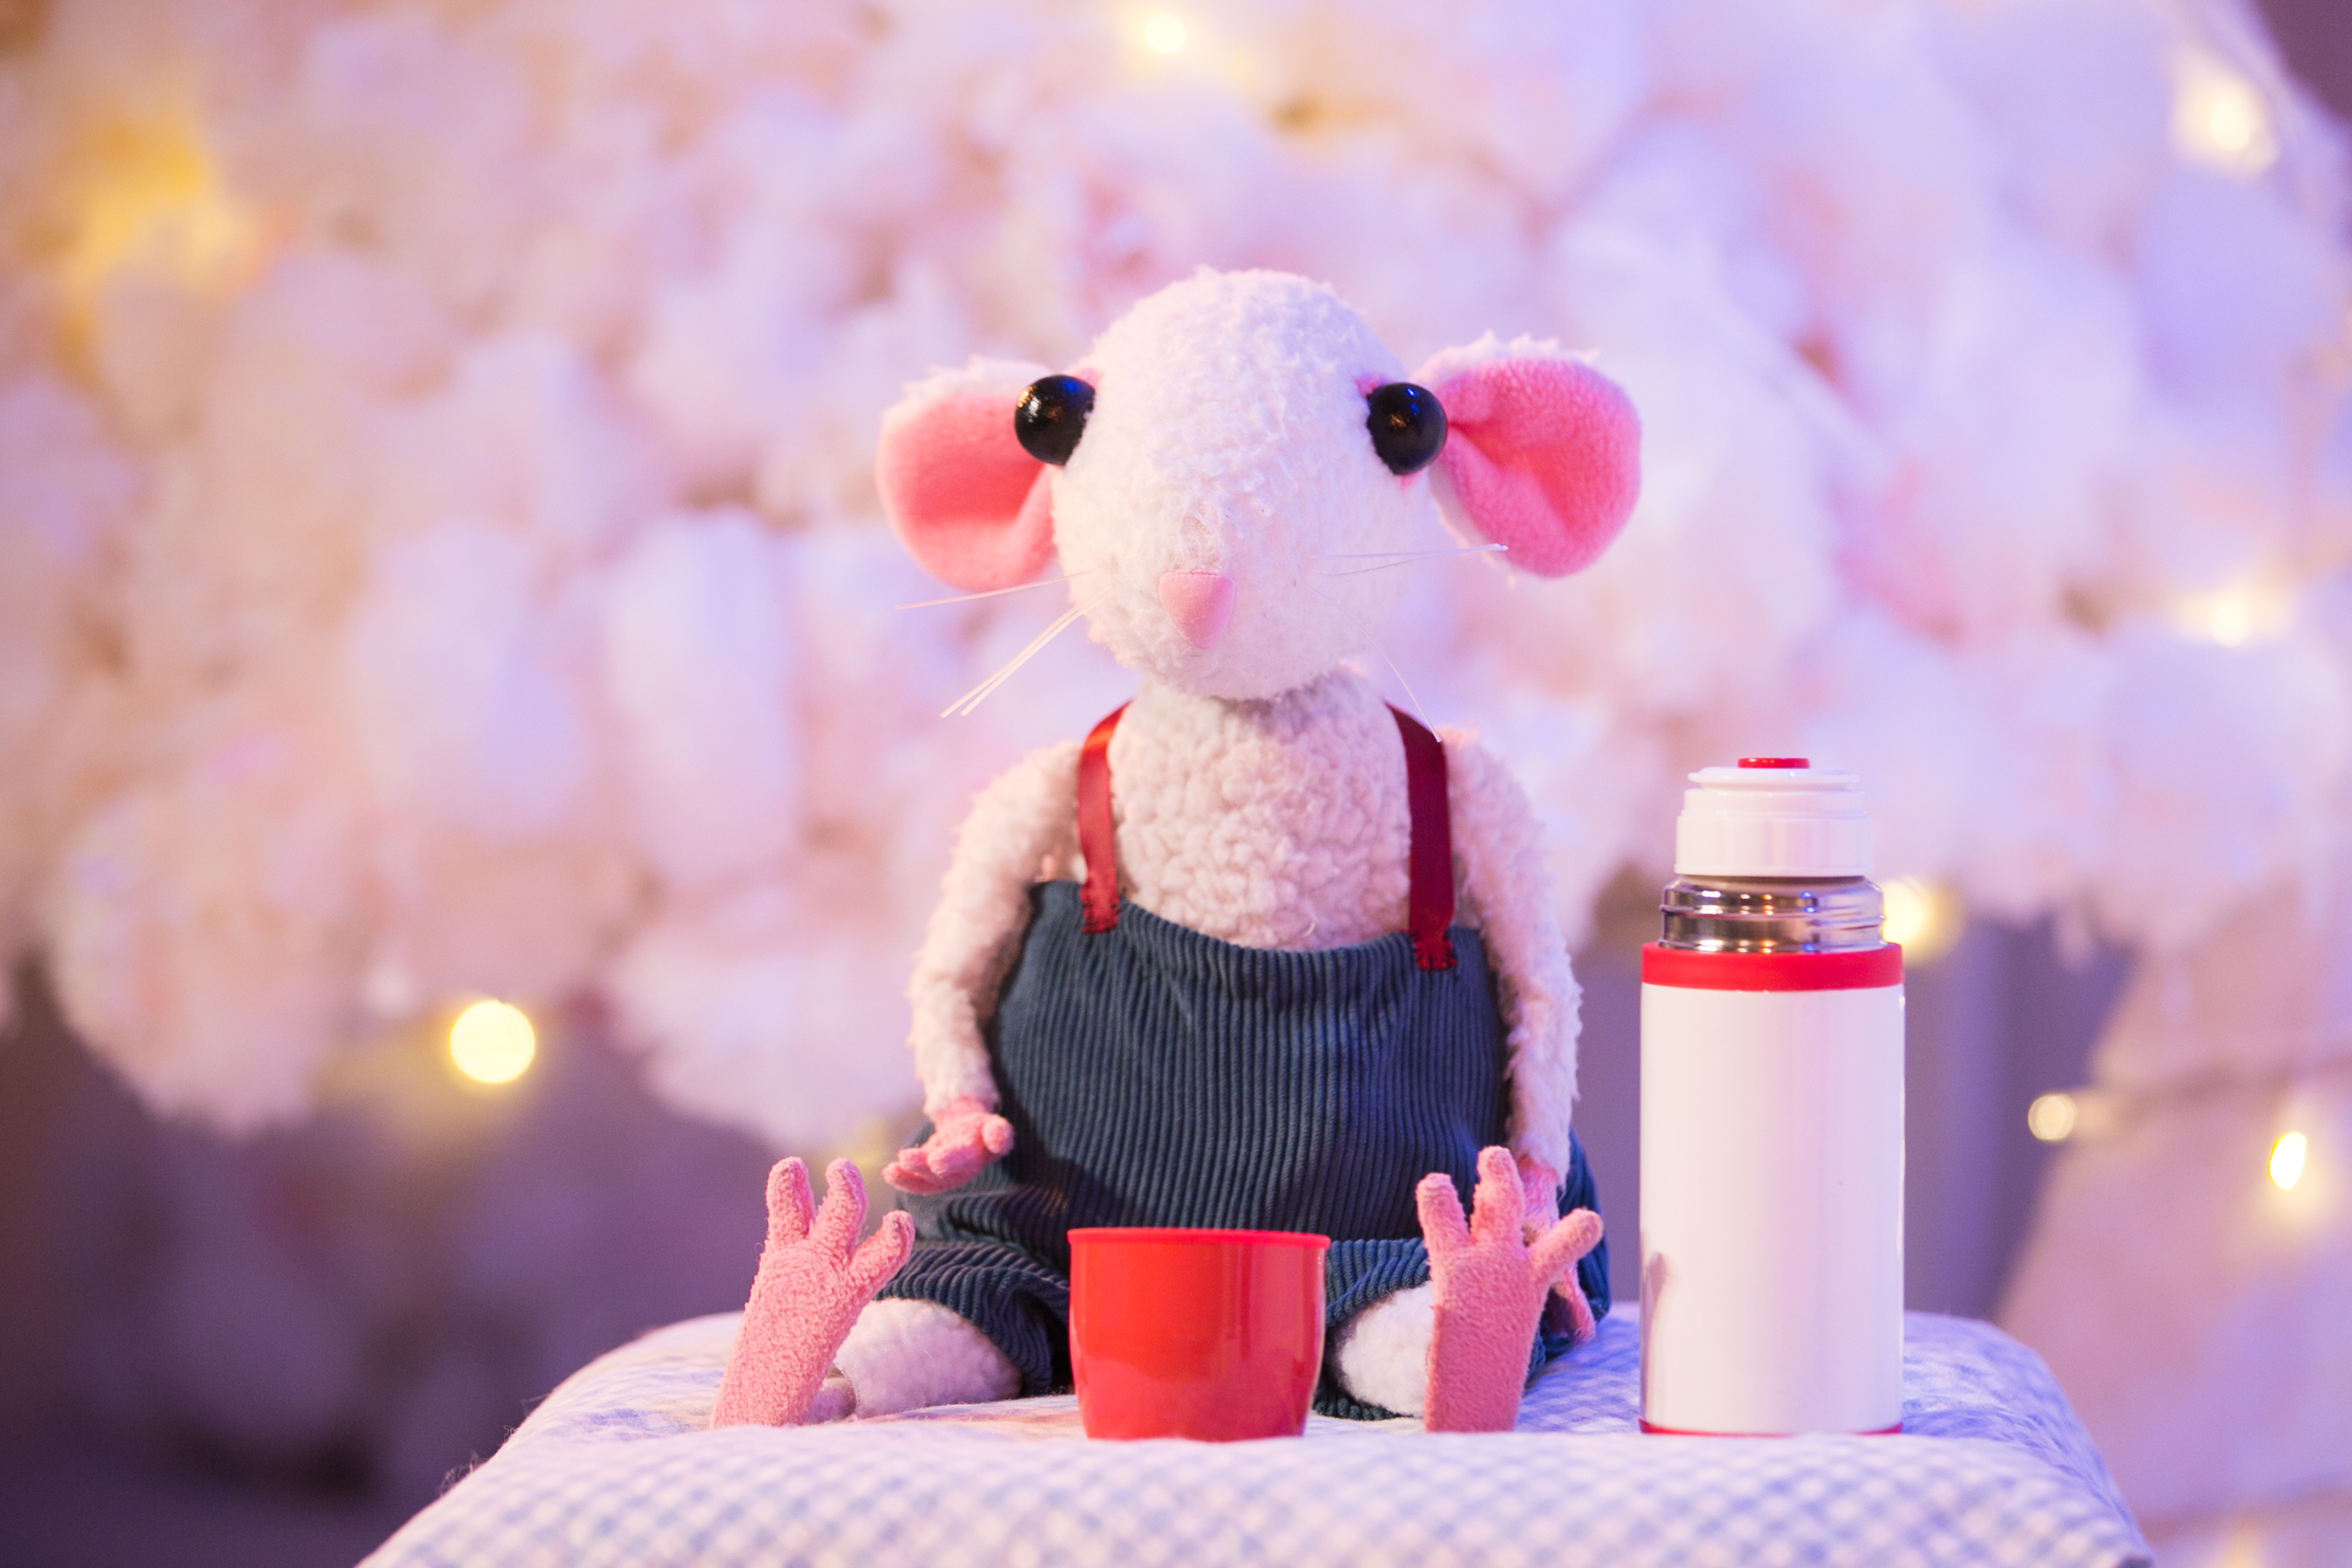 Snow Mouse sat drinking with a thermos